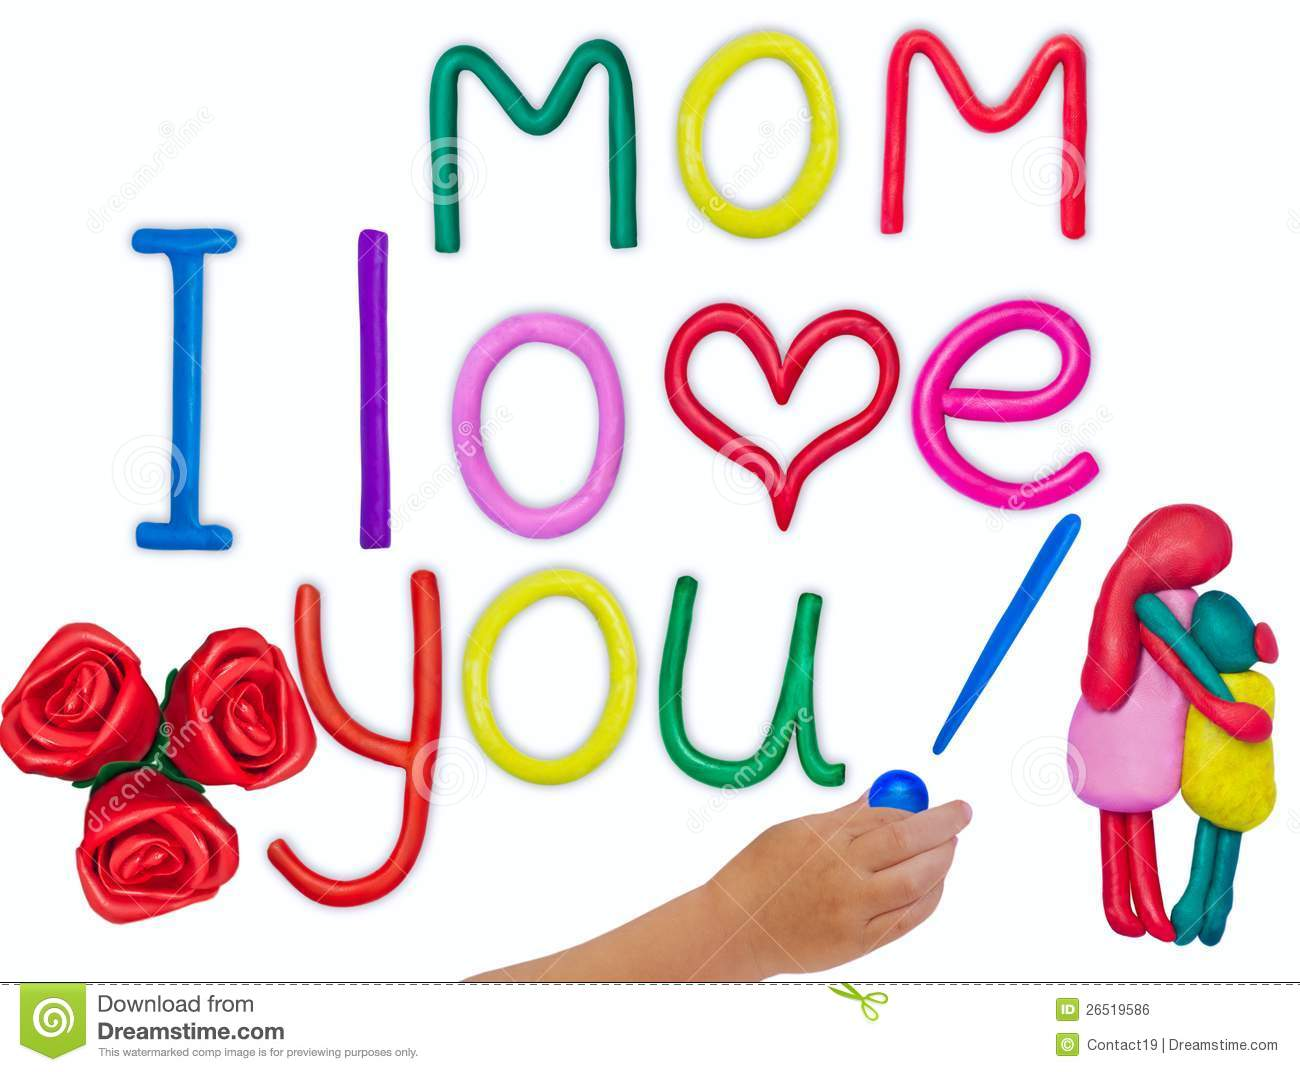 Plasticine Kids Love Message For Mother Royalty Free Stock Image - Image...